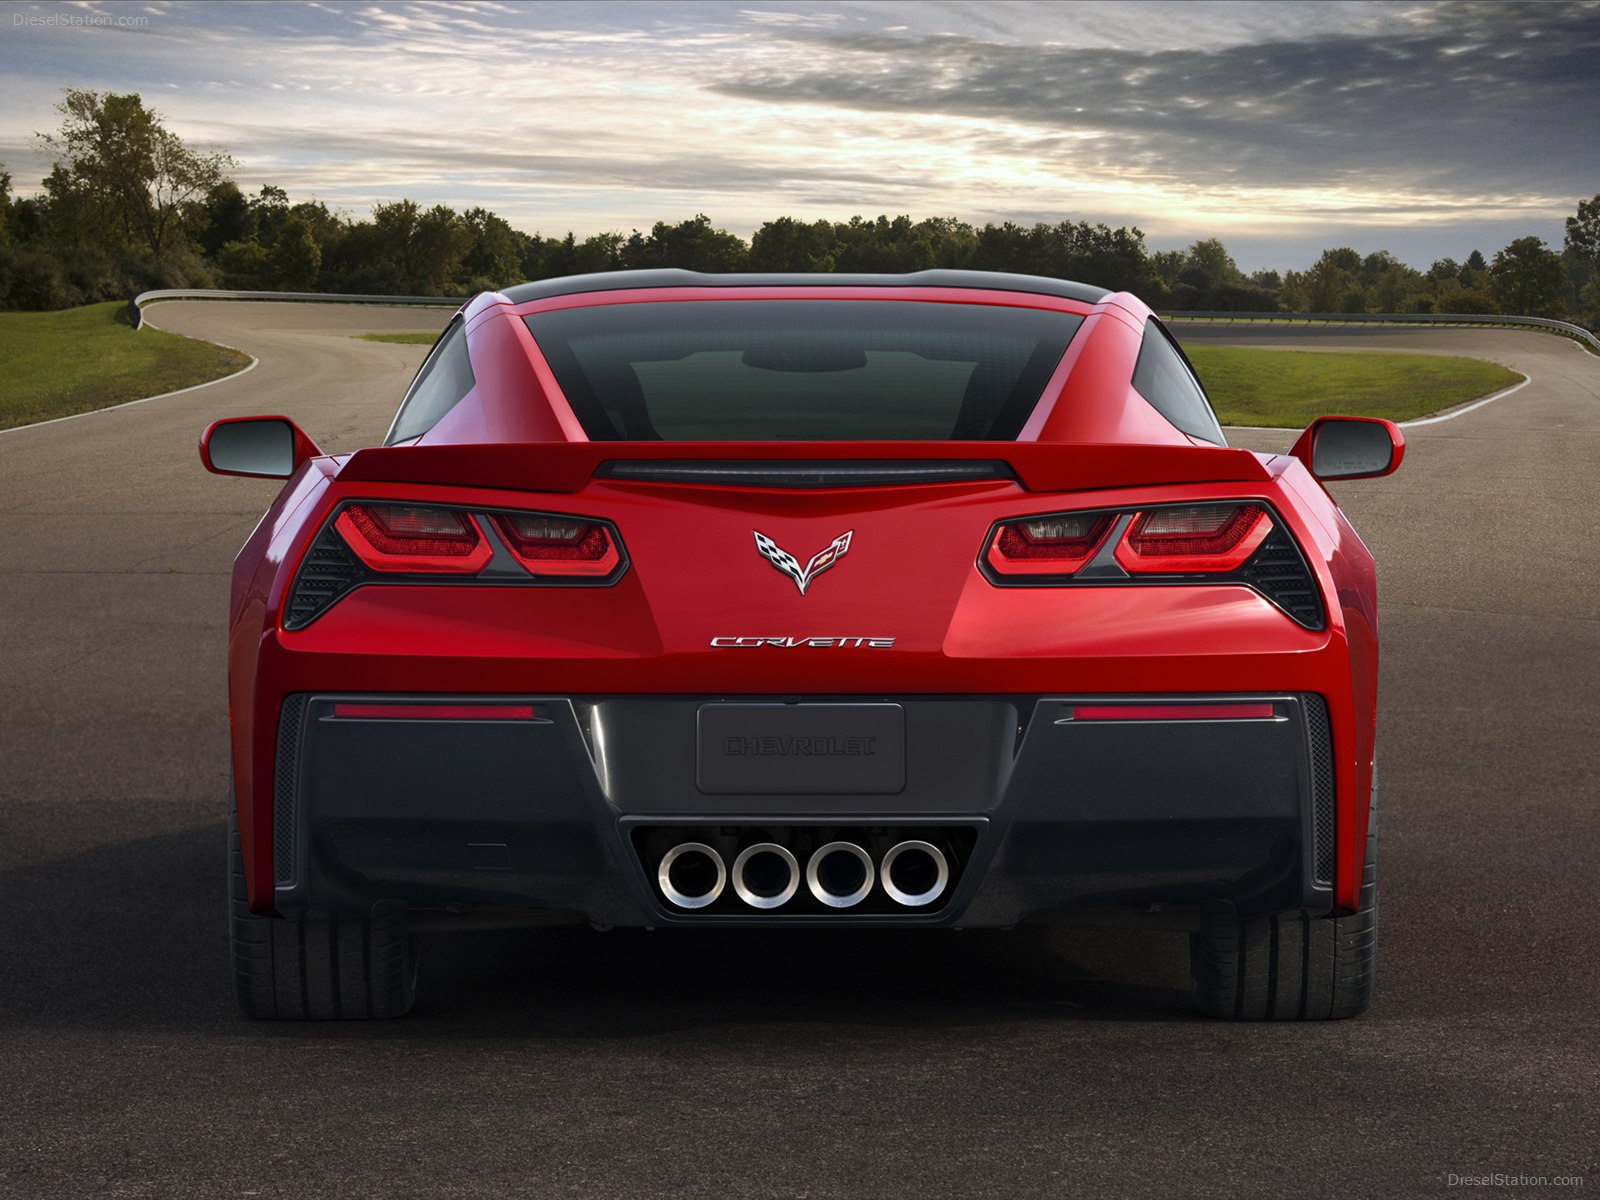 2019 Chevrolet Corvette GT1 photo - 6